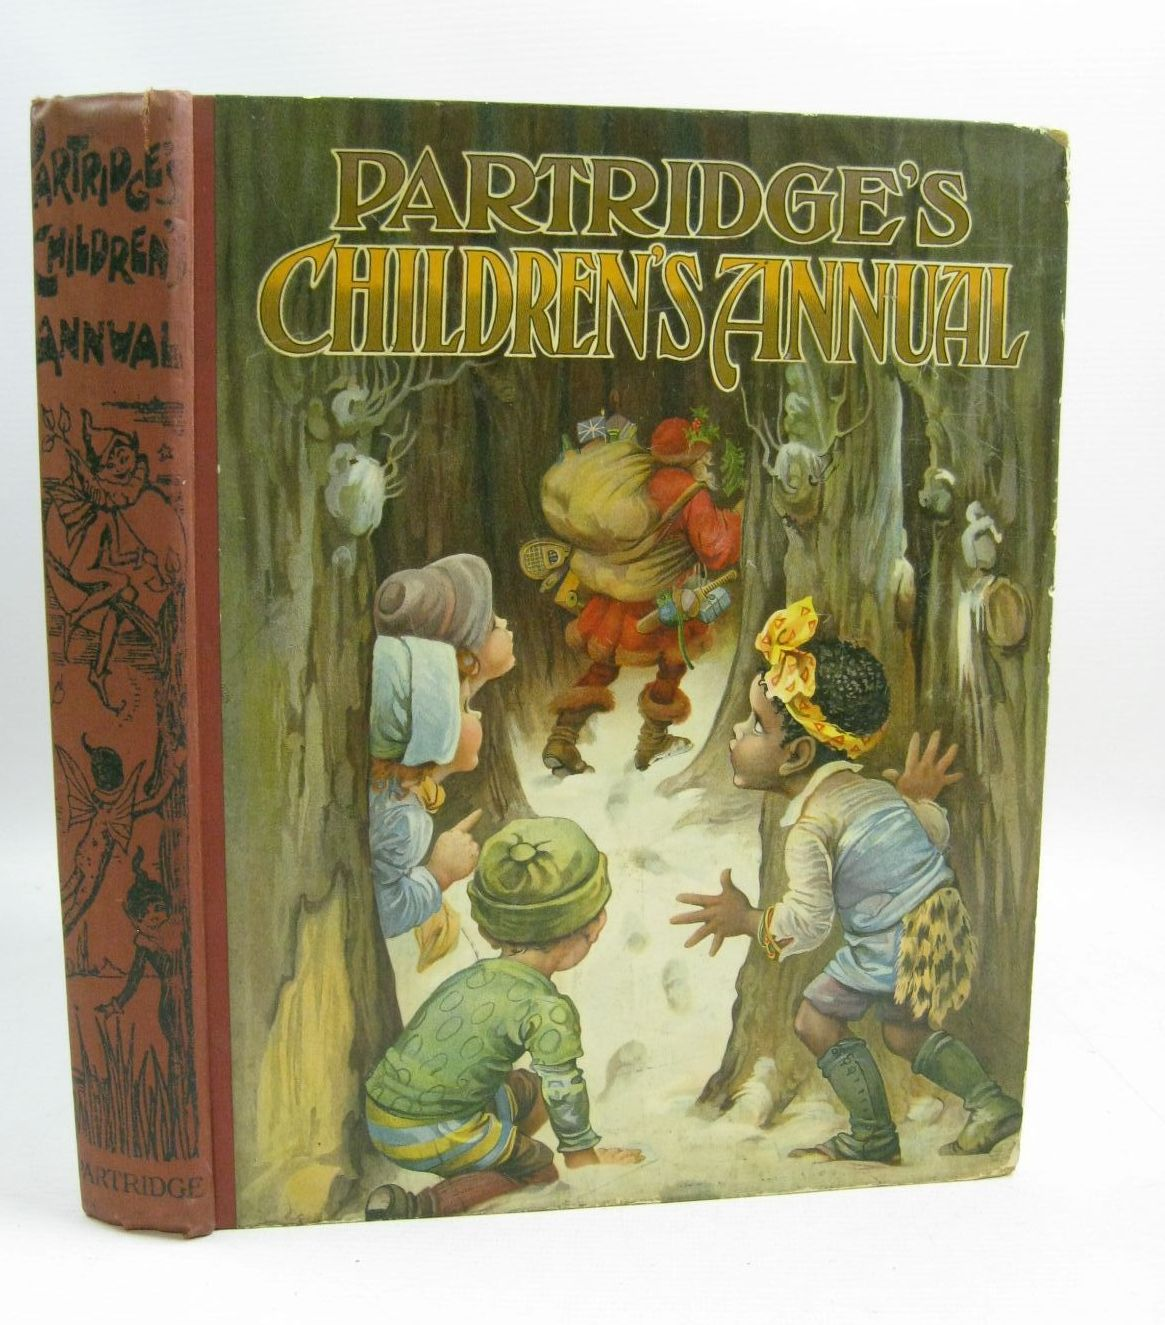 Photo of PARTRIDGE'S CHILDREN'S ANNUAL - 7TH YEAR written by Cash, Agness E. Lea, John Blomfield, Elsie et al, illustrated by Aris, Ernest A. Blomfield, Elsie Bowley, A.L. Cooke, Arthur Wain, Louis et al., published by S.W. Partridge & Co. Ltd. (STOCK CODE: 1315363)  for sale by Stella & Rose's Books